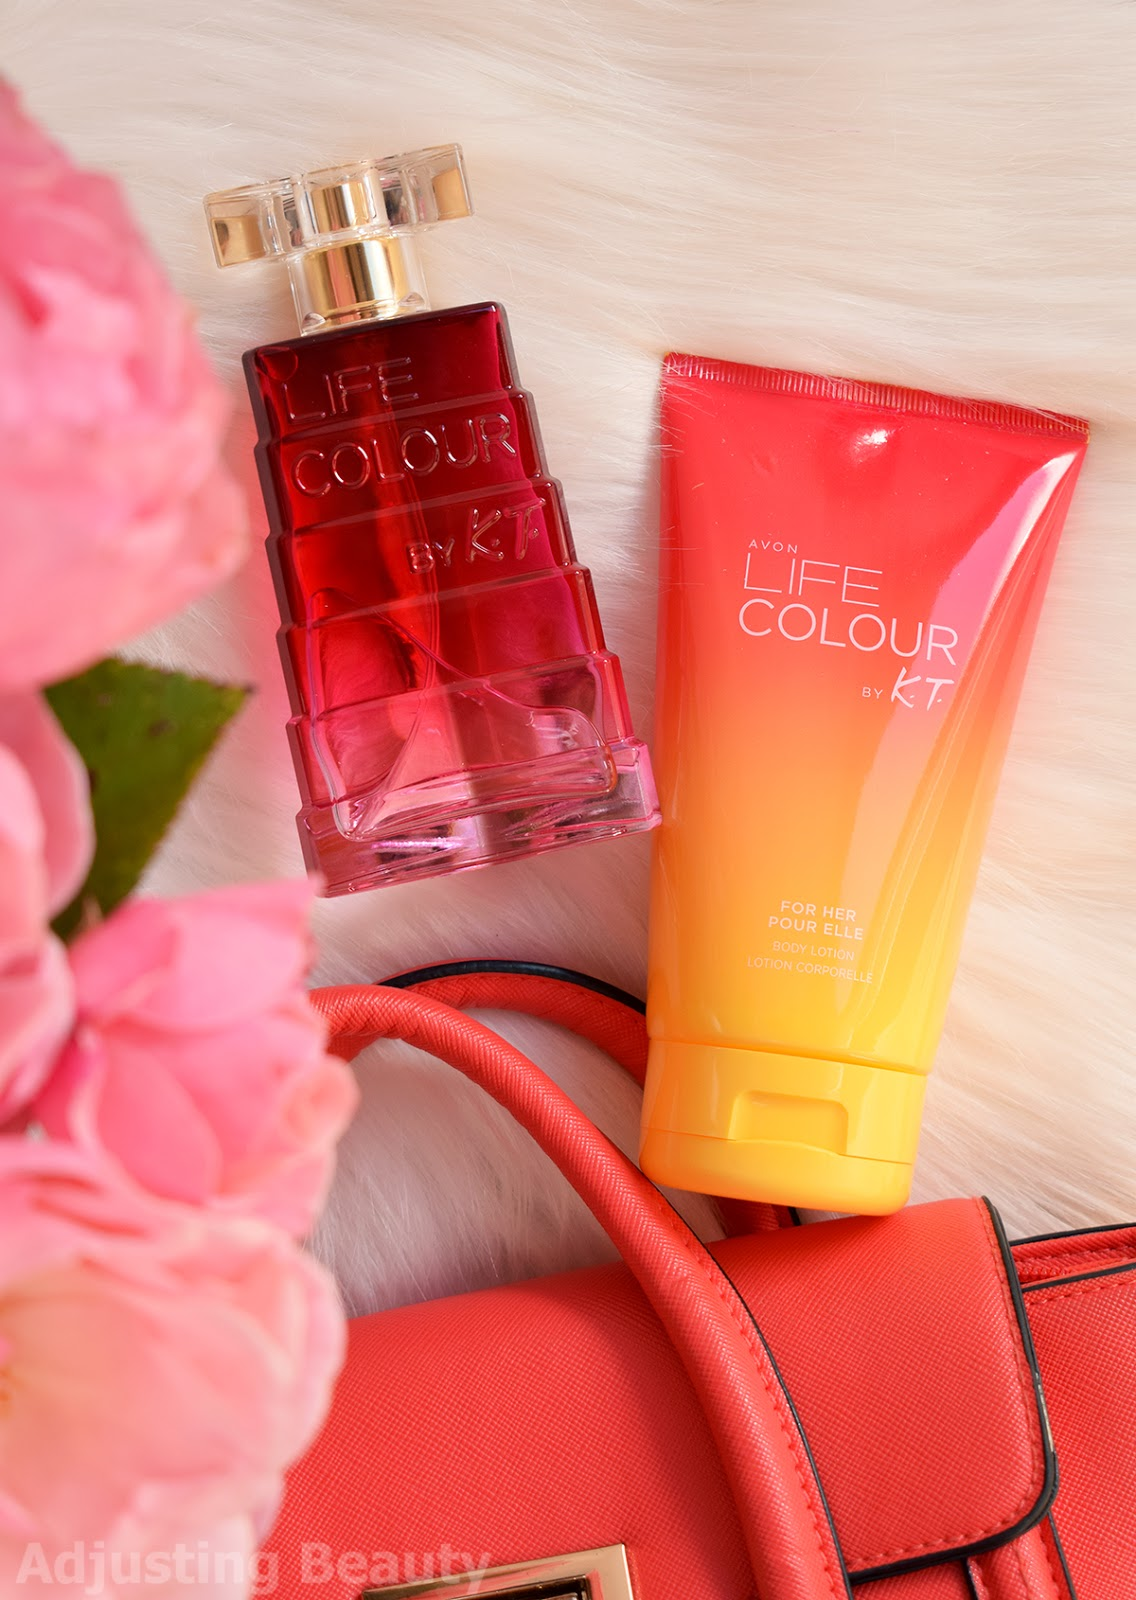 Review Avon Life Colour By Kenzo Takada Eau De Parfum And Body